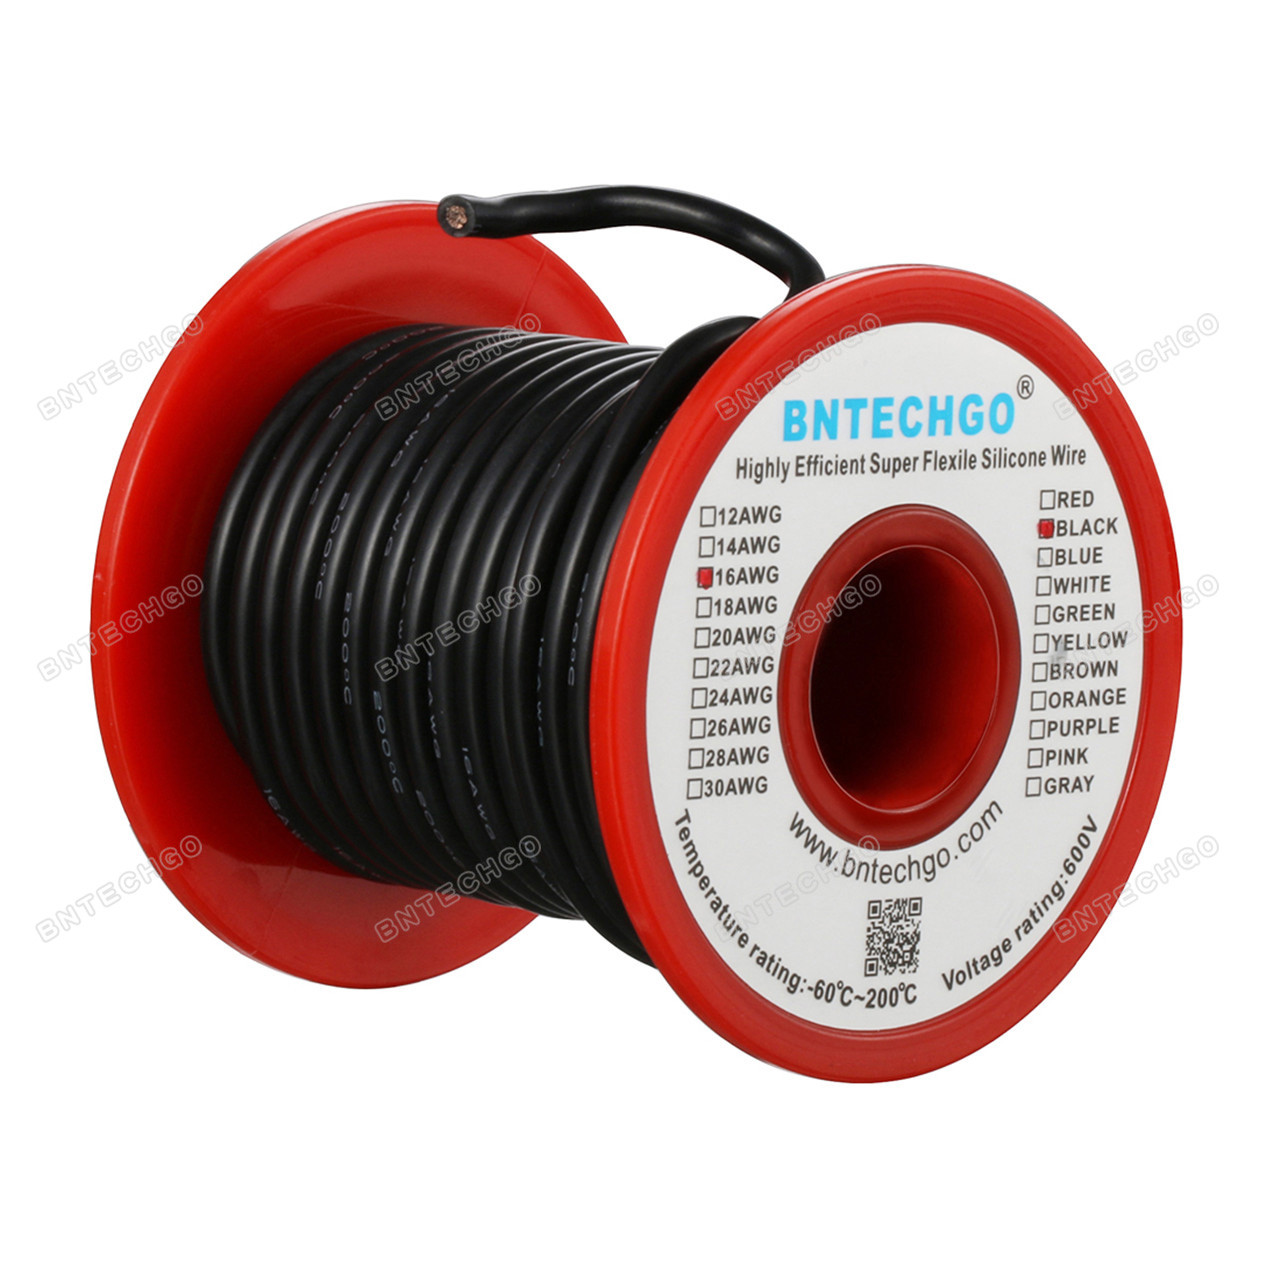 BNTECHGO 16 Gauge Silicone Wire Spool Black 50 feet Ultra Flexible High  Temp 200 deg C 600V 16 AWG Silicone Rubber Wire 252 Strands of Tinned  Copper